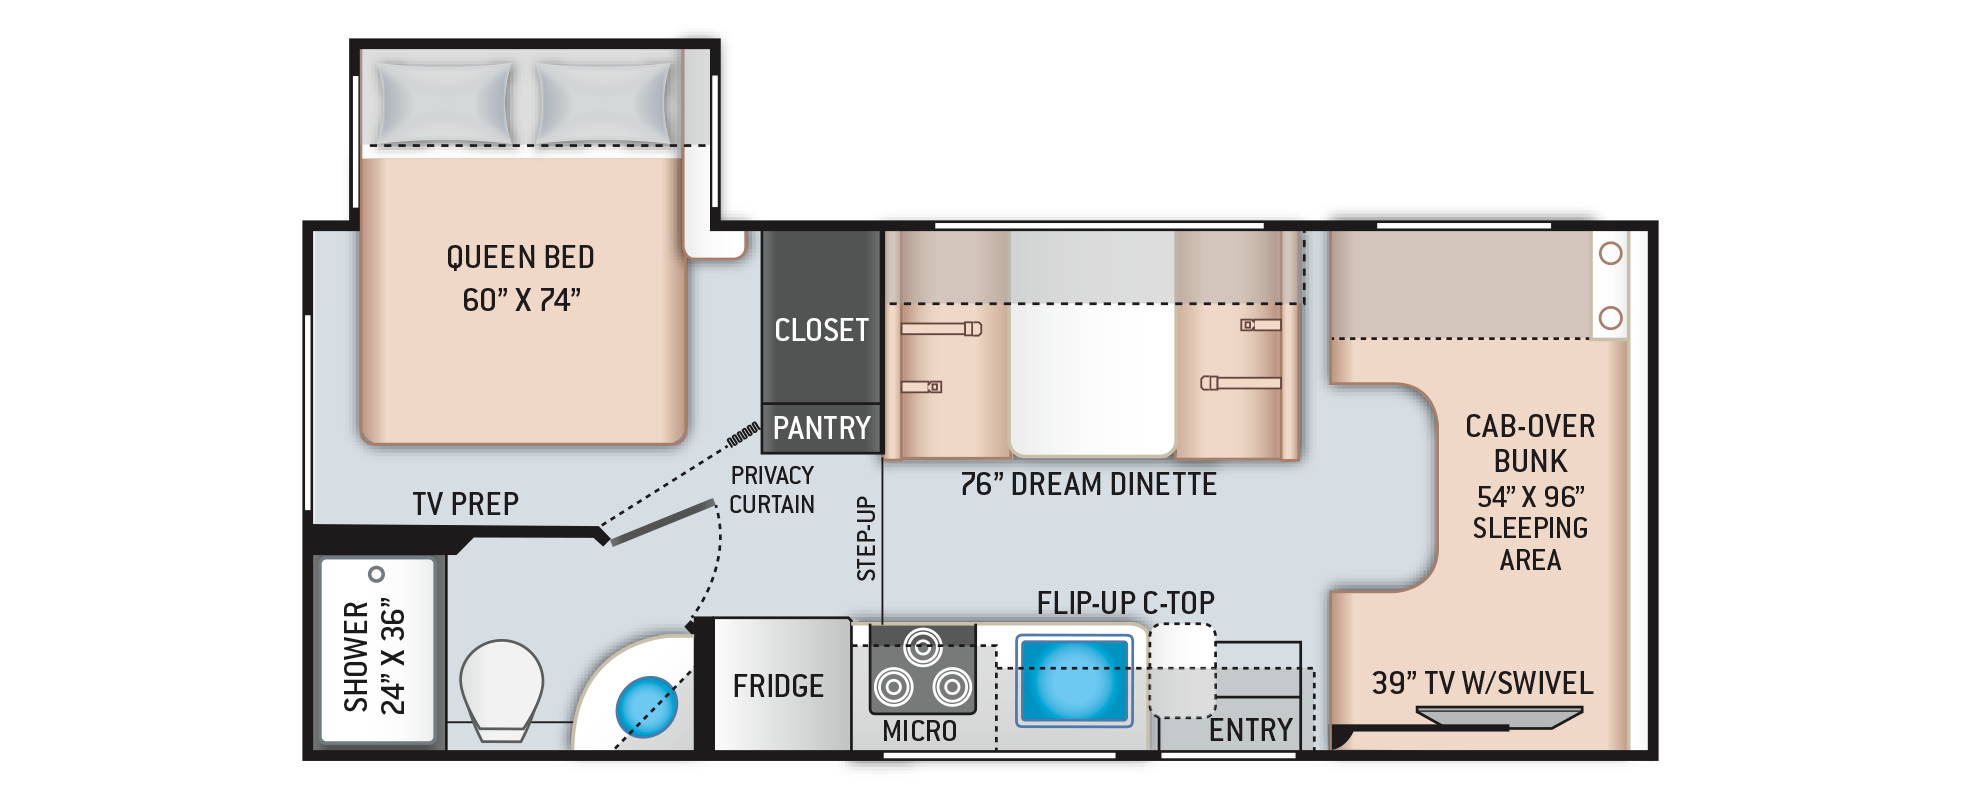 Freedom Elite Class C RV 22FE Floor Plan